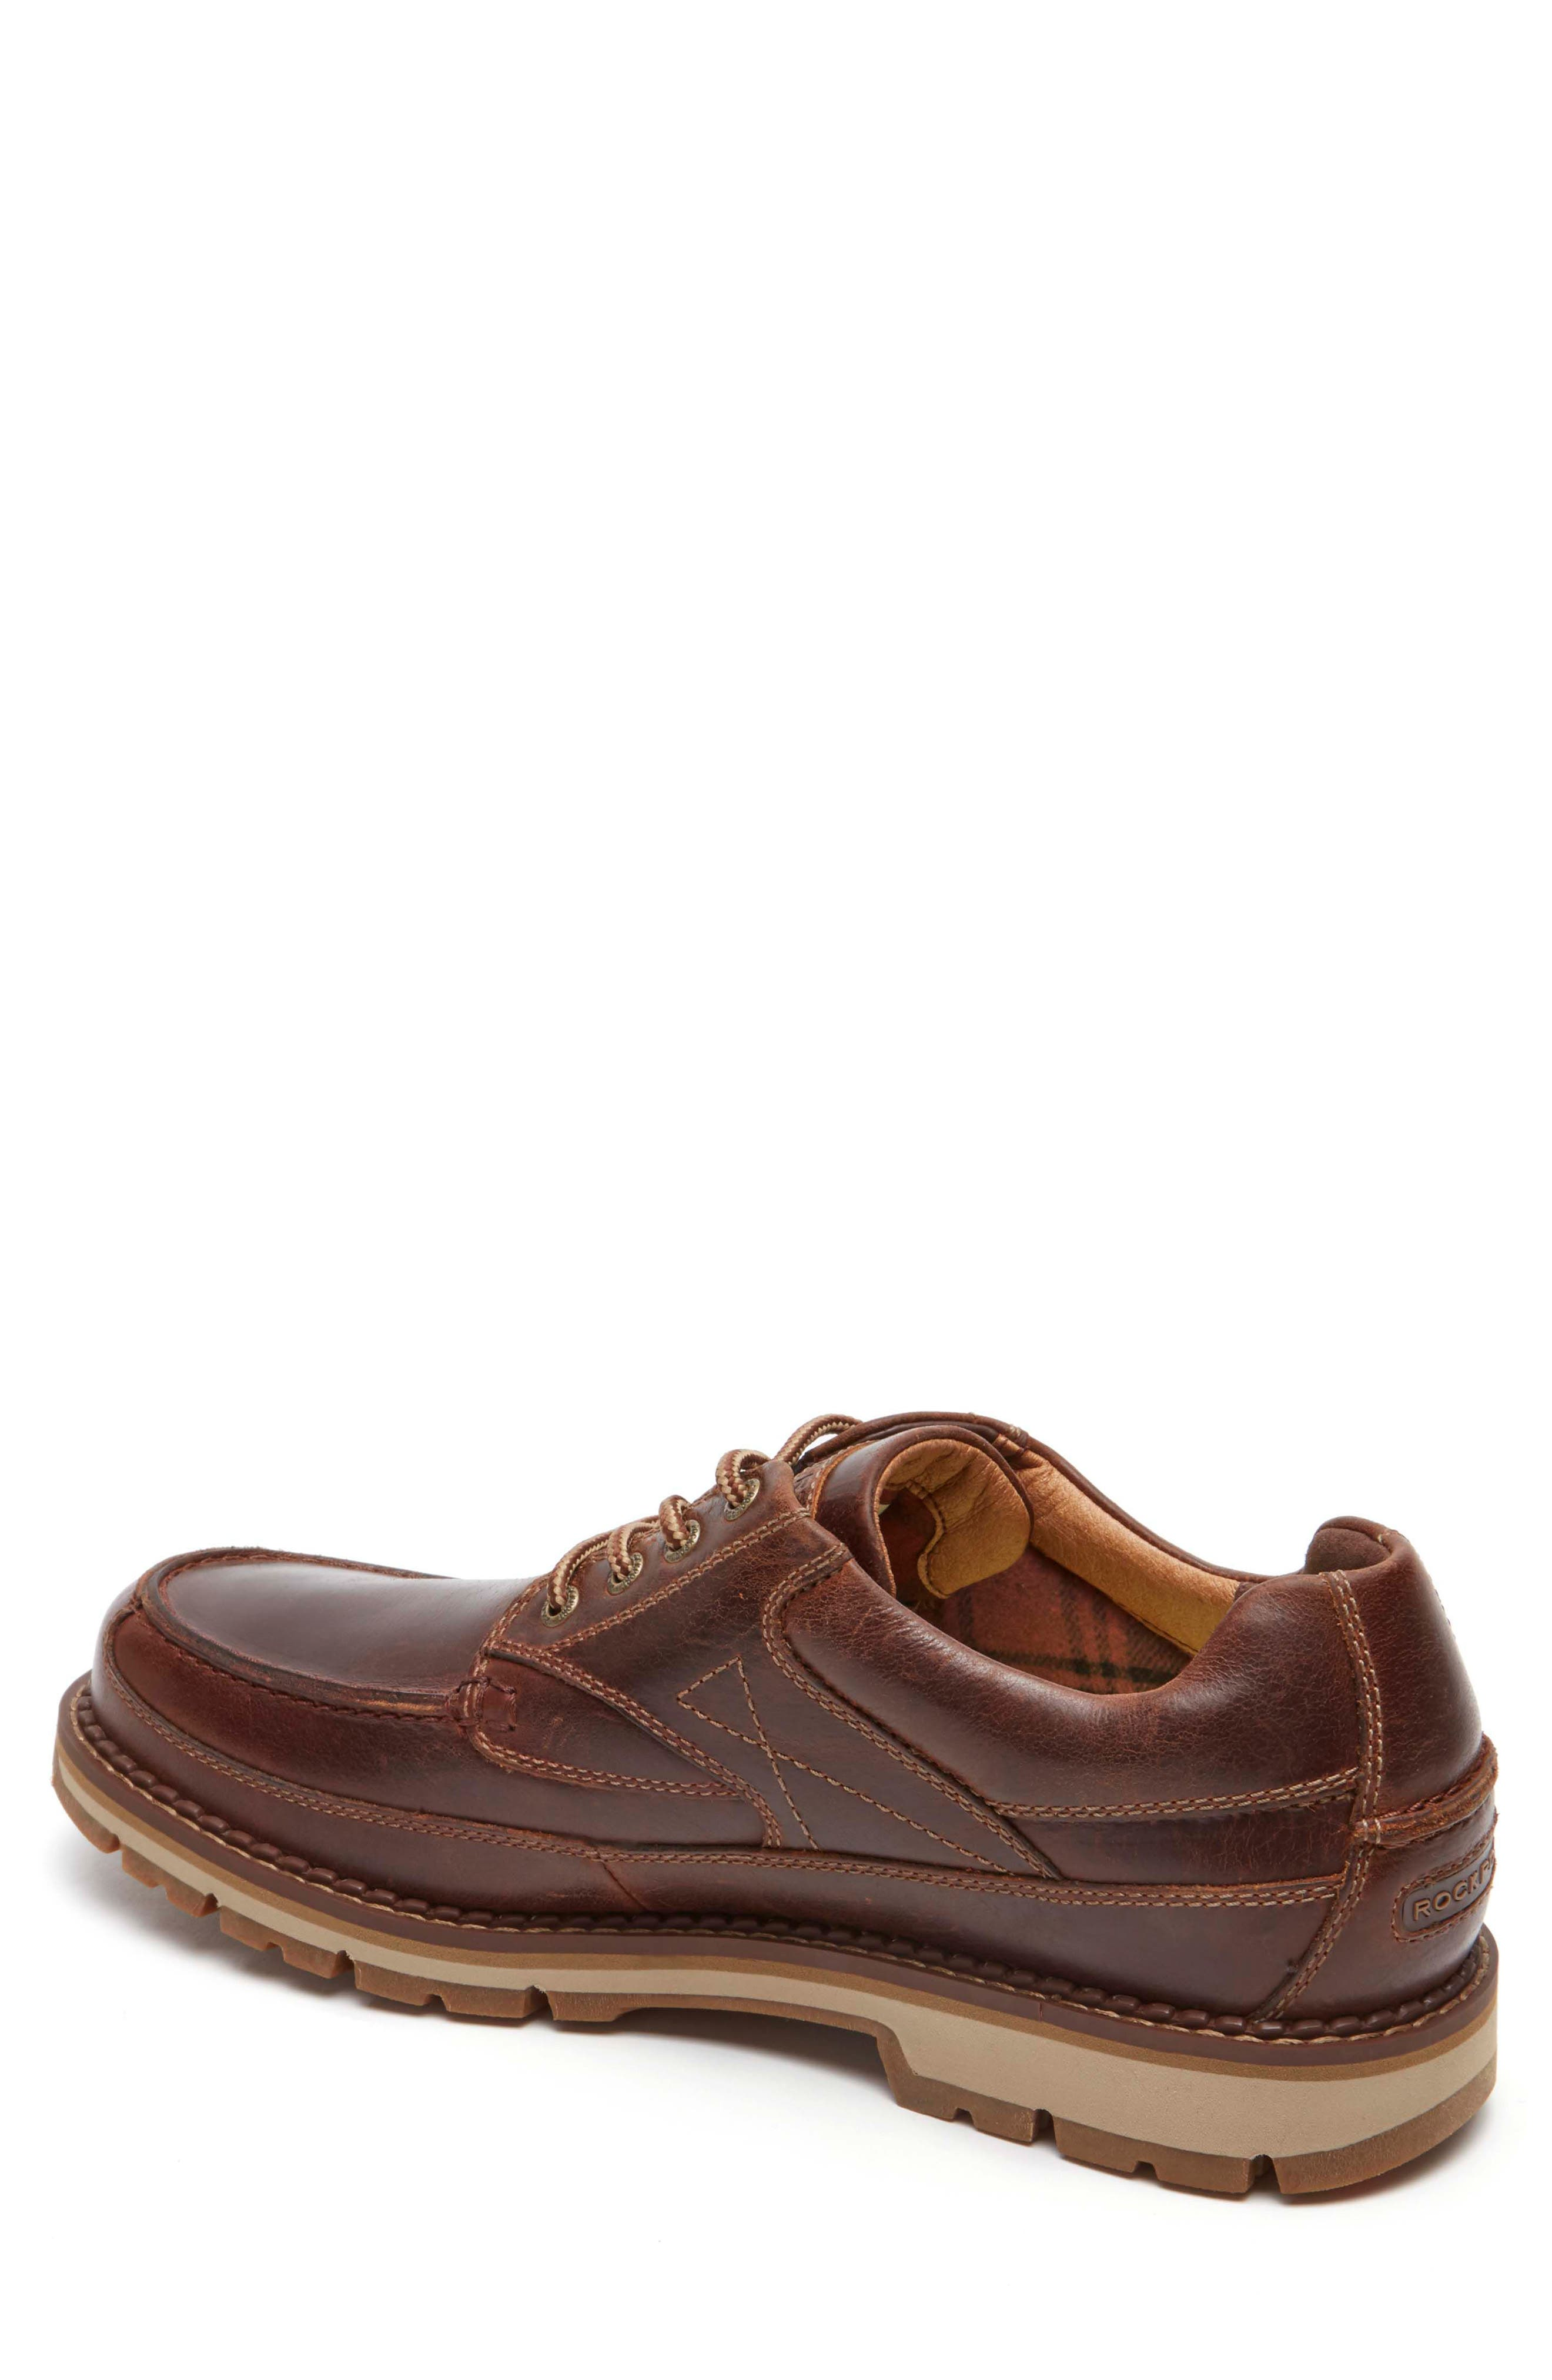 Centry Moc Toe Derby,                             Alternate thumbnail 2, color,                             Brown Leather